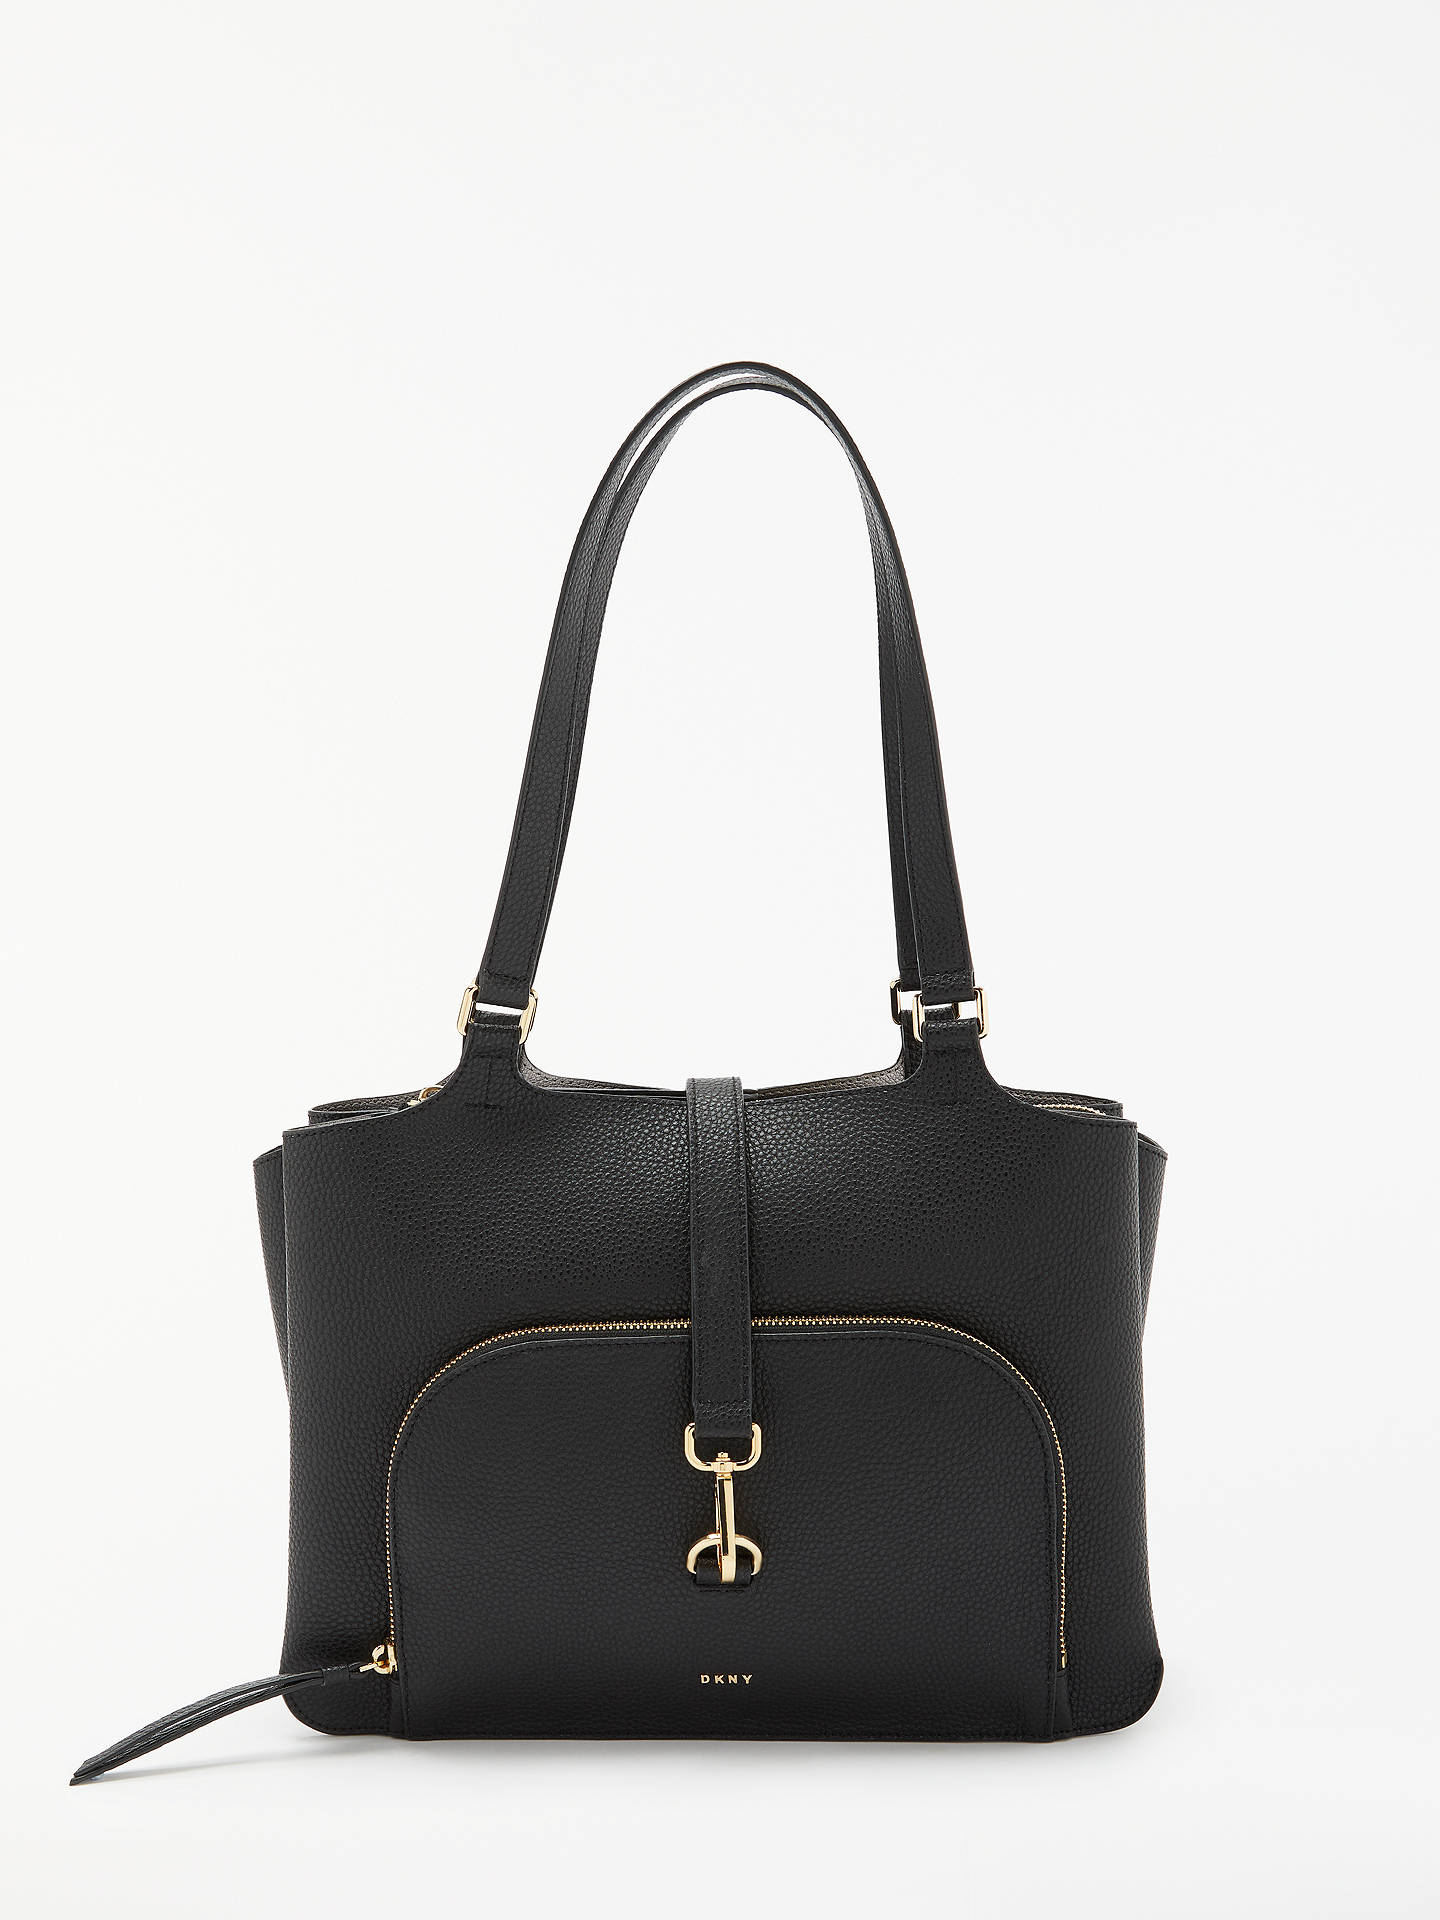 90874ac15bb Buy DKNY Paris Large Pebbled Leather Tote Bag, Black Online at  johnlewis.com ...